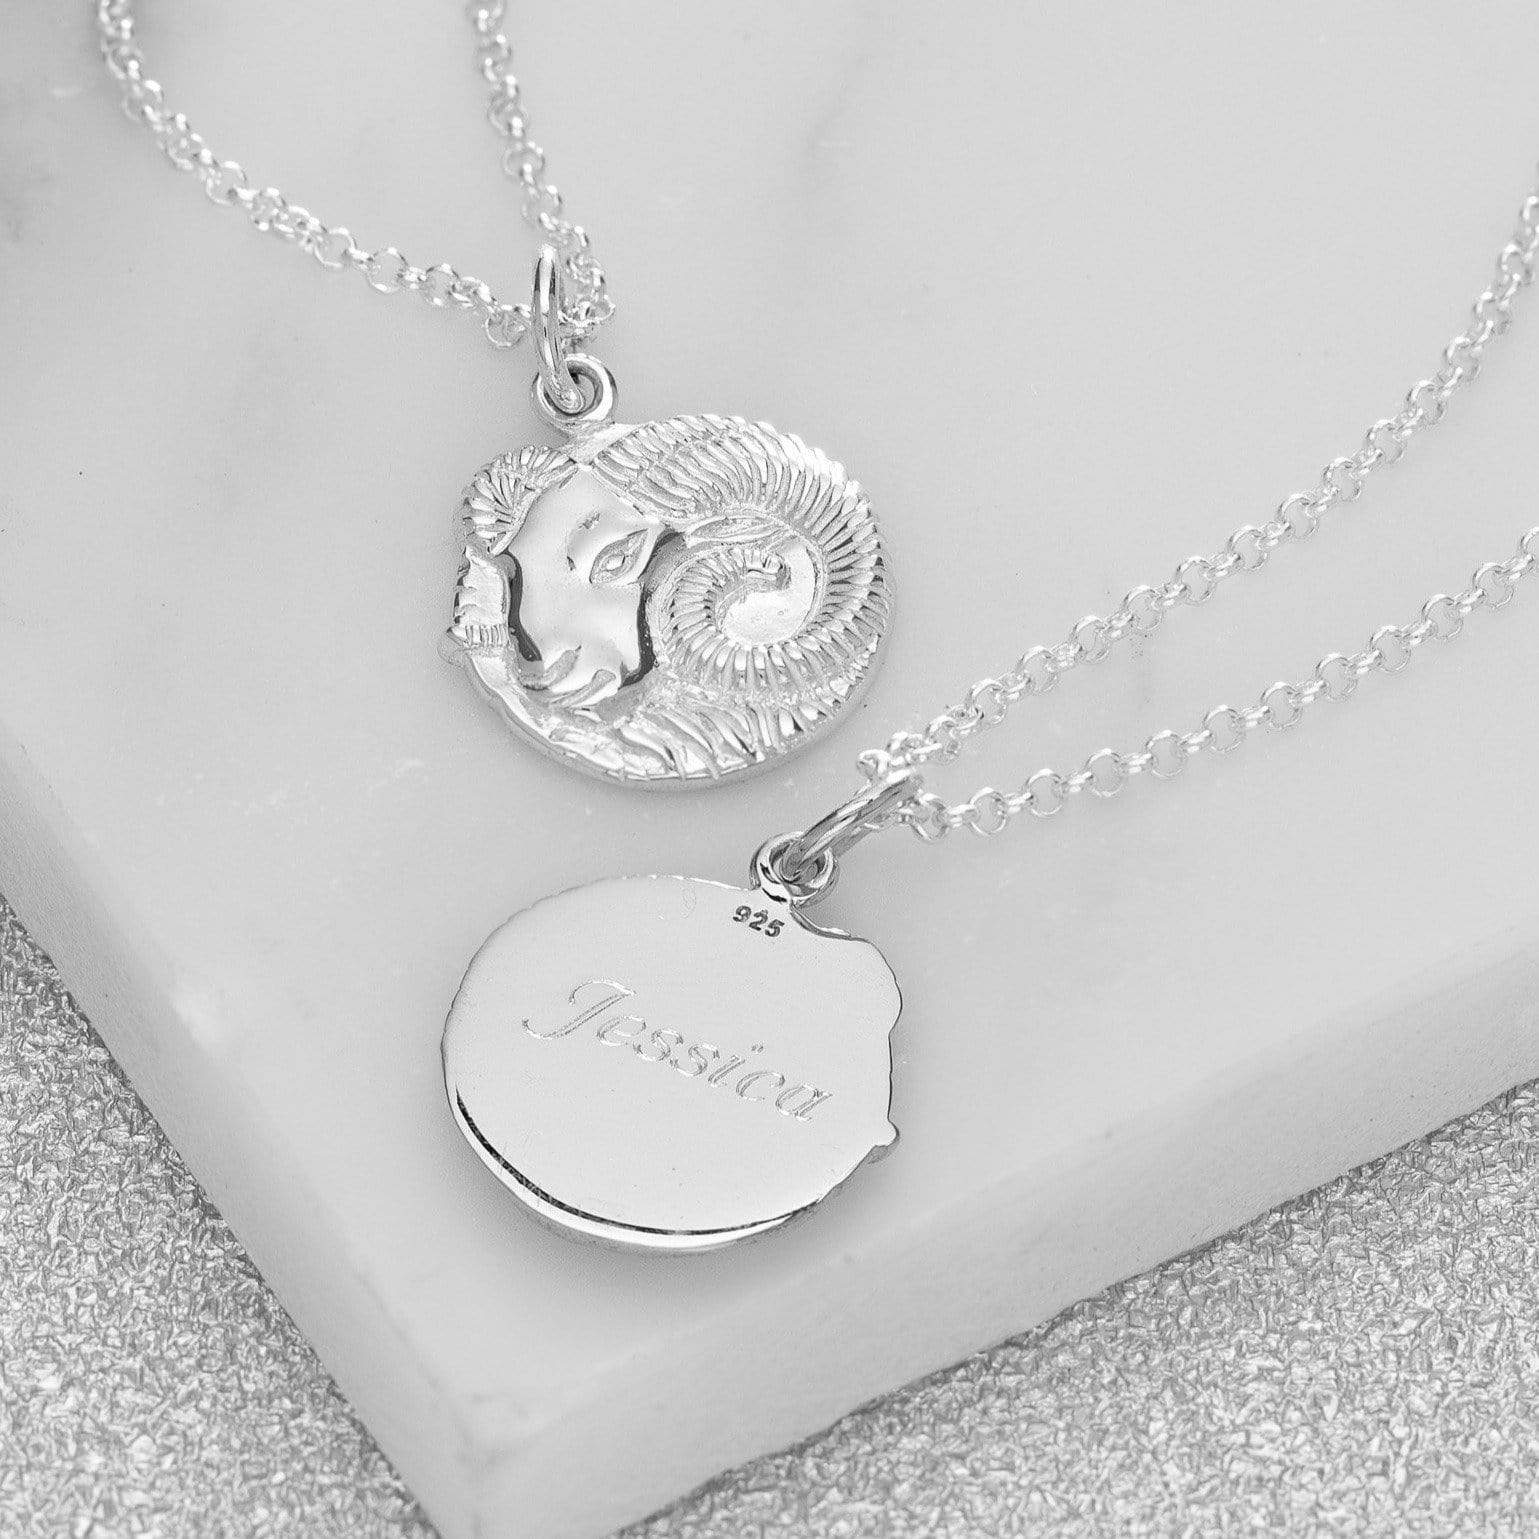 Engraved Silver Aries Zodiac Necklace - Lily Charmed